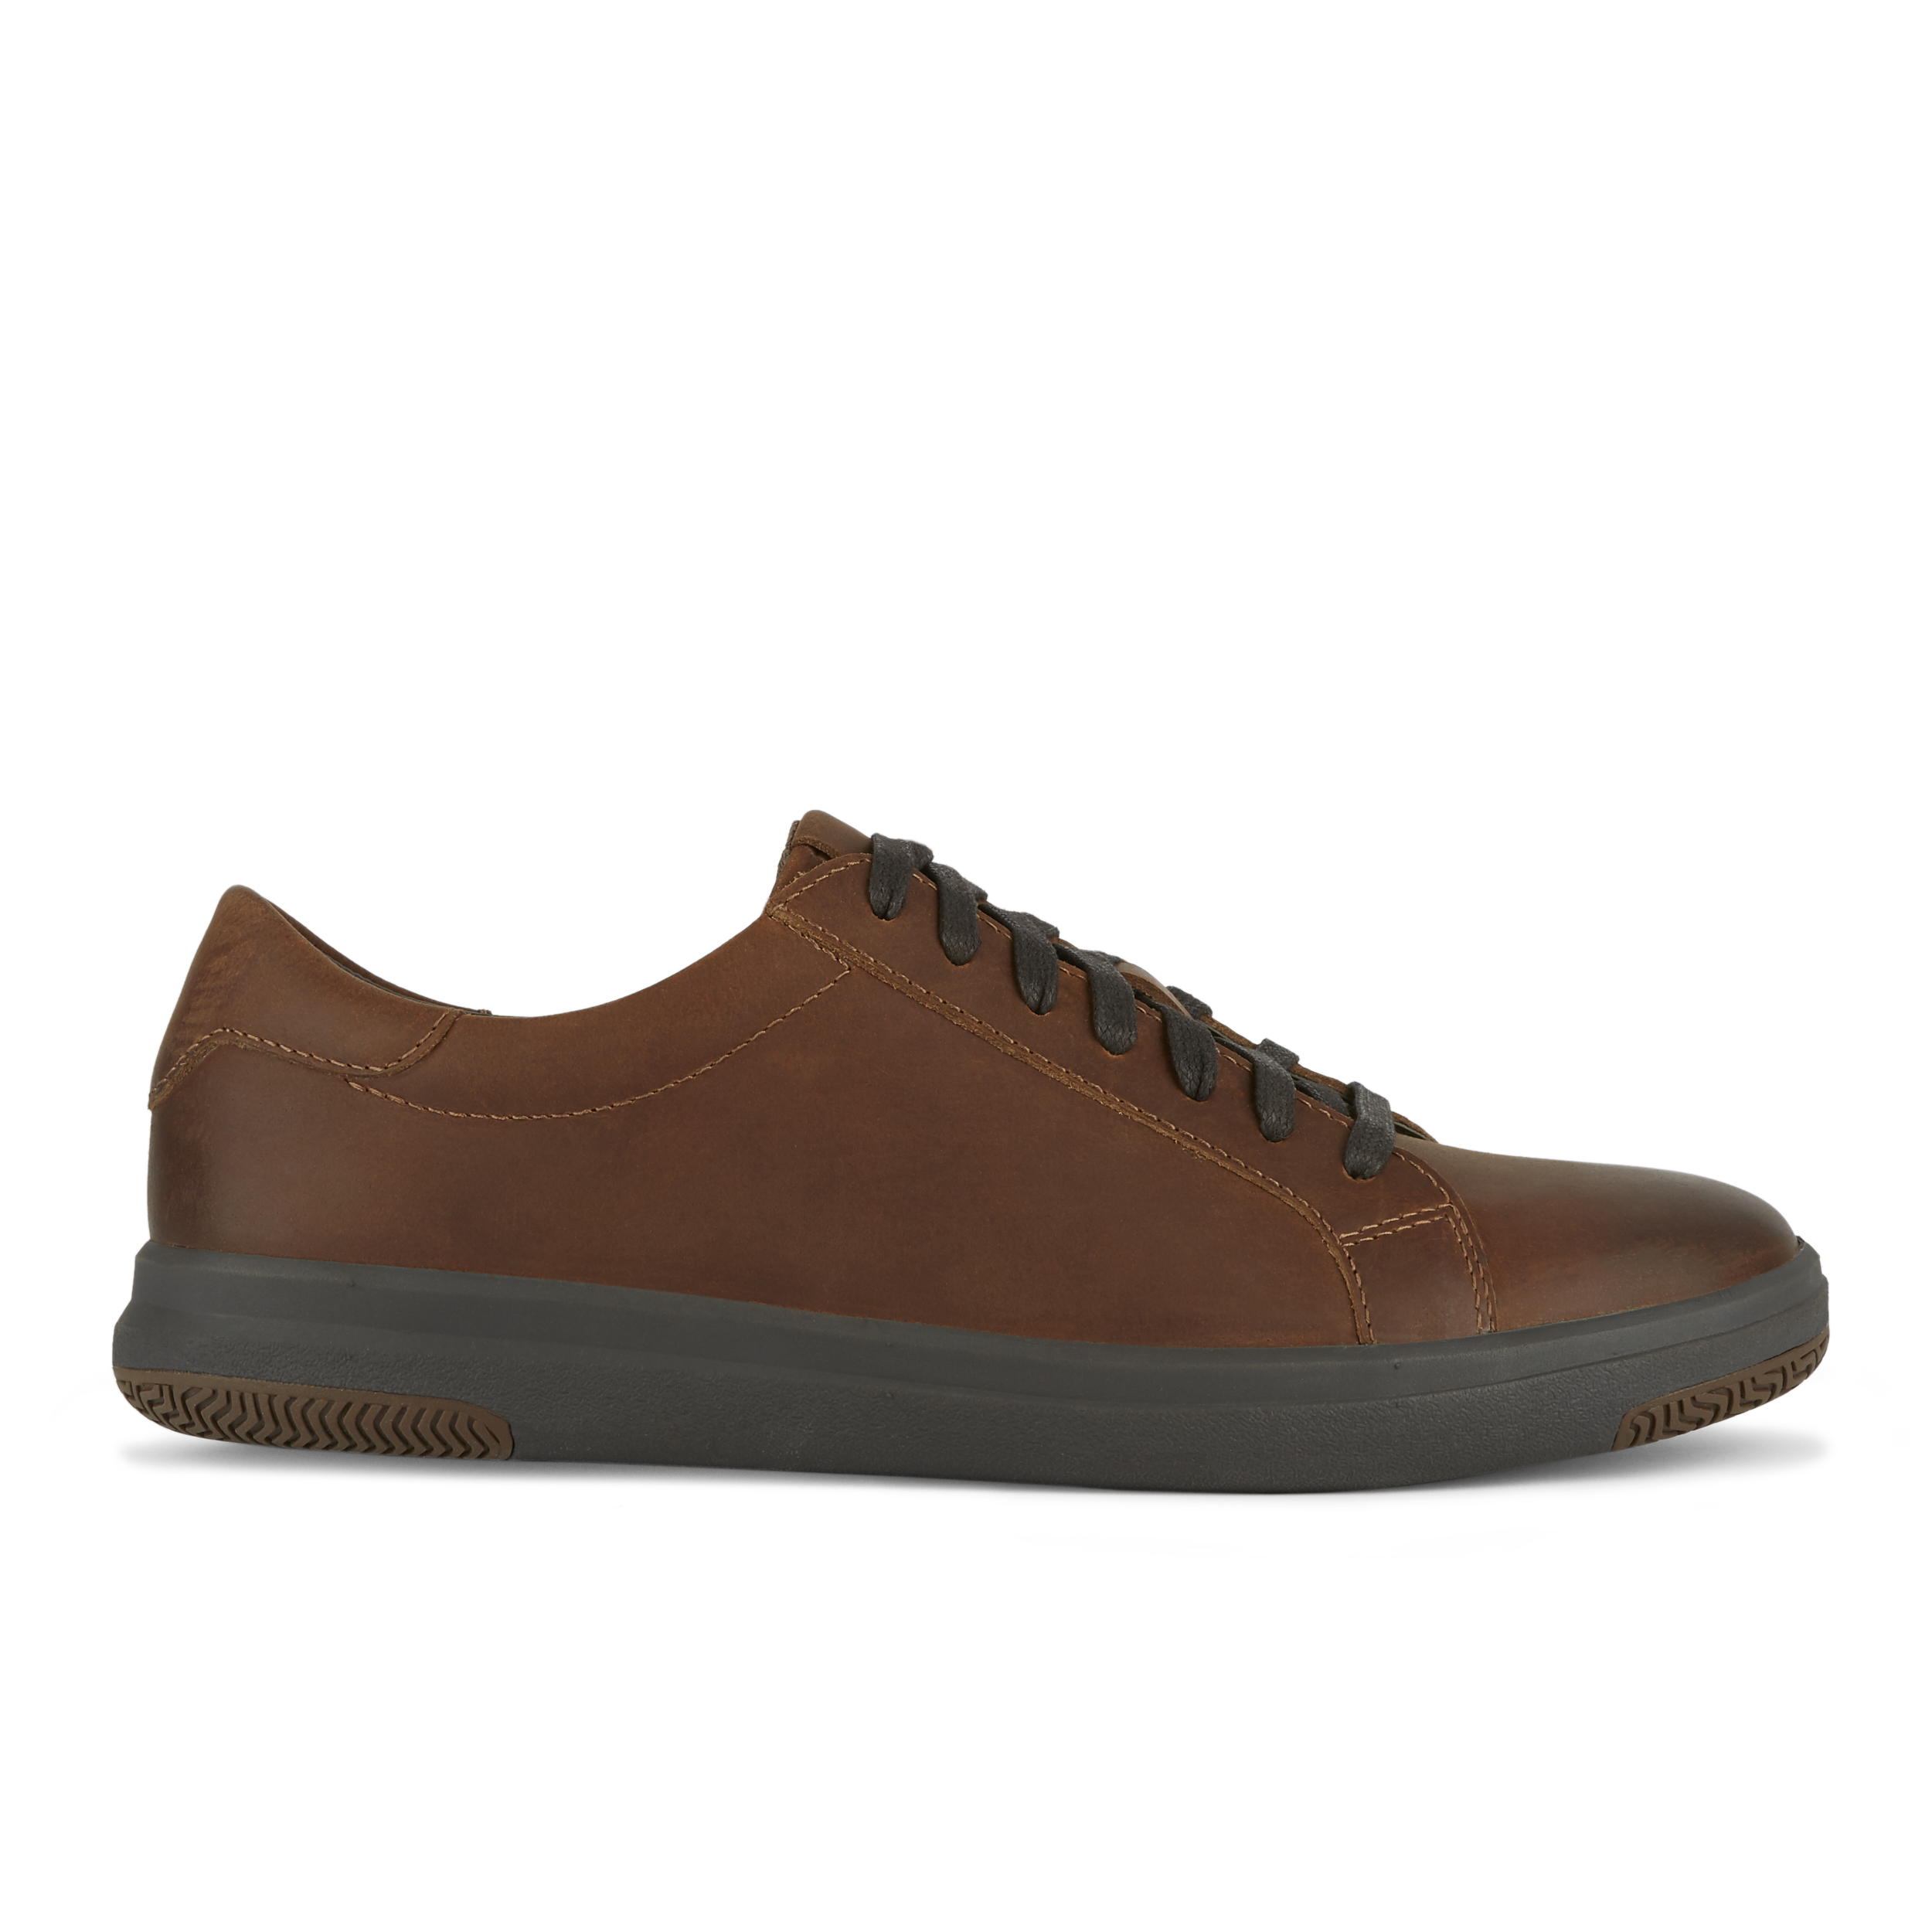 Dockers-Mens-Gilmore-Genuine-Leather-Casual-Fashion-Lace-up-Sneaker-Shoe thumbnail 24